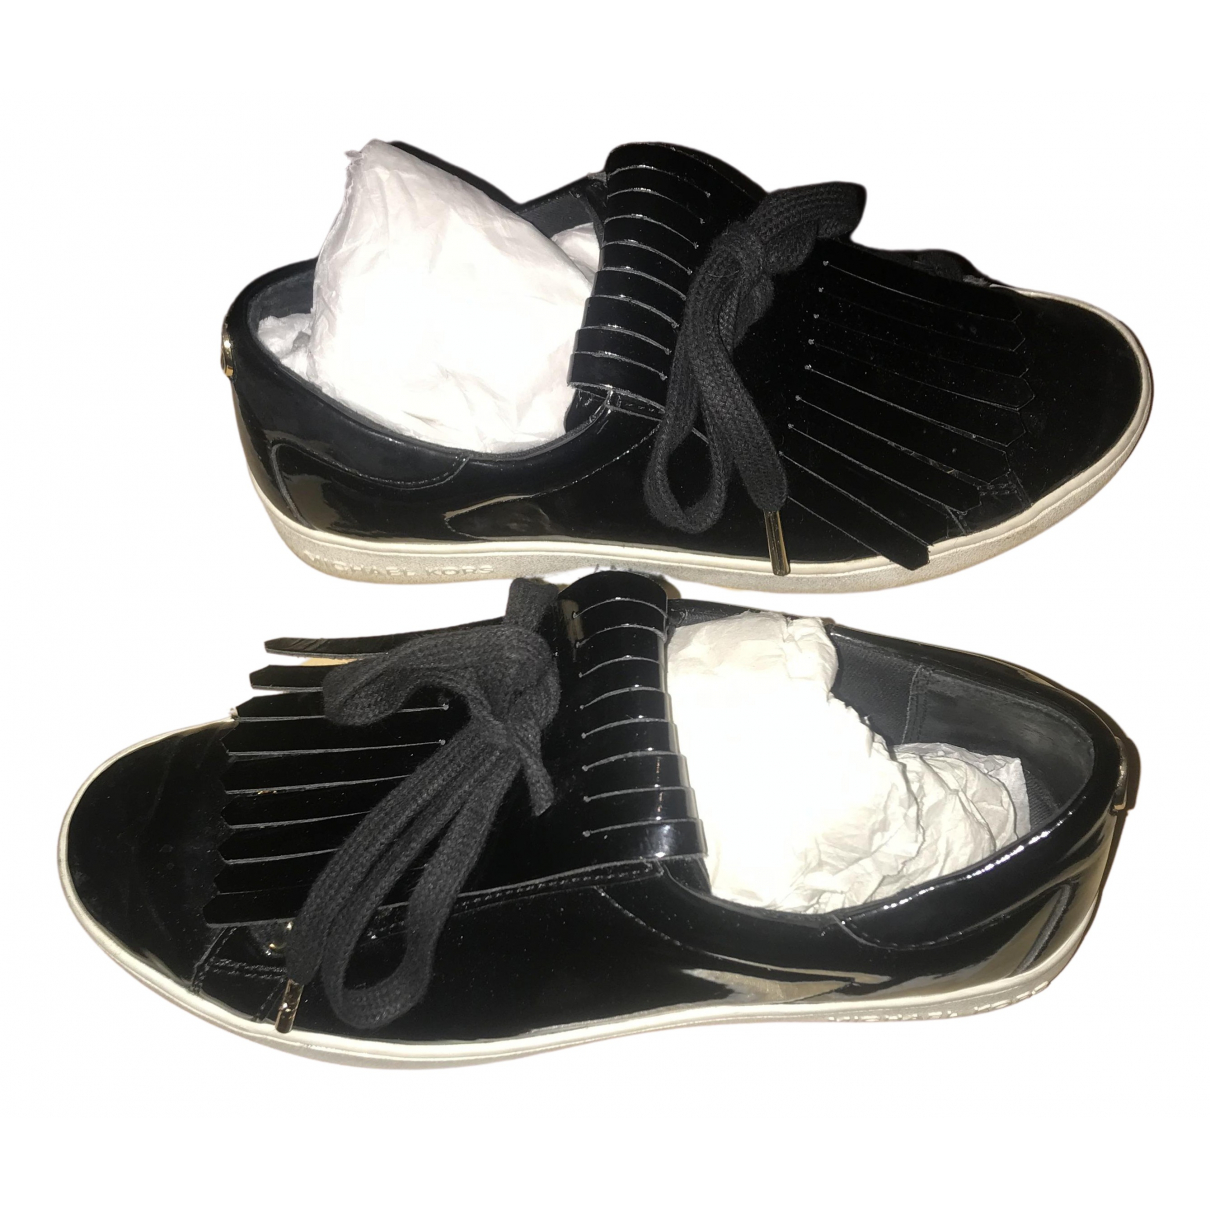 Michael Kors \N Black Patent leather Trainers for Women 36 EU